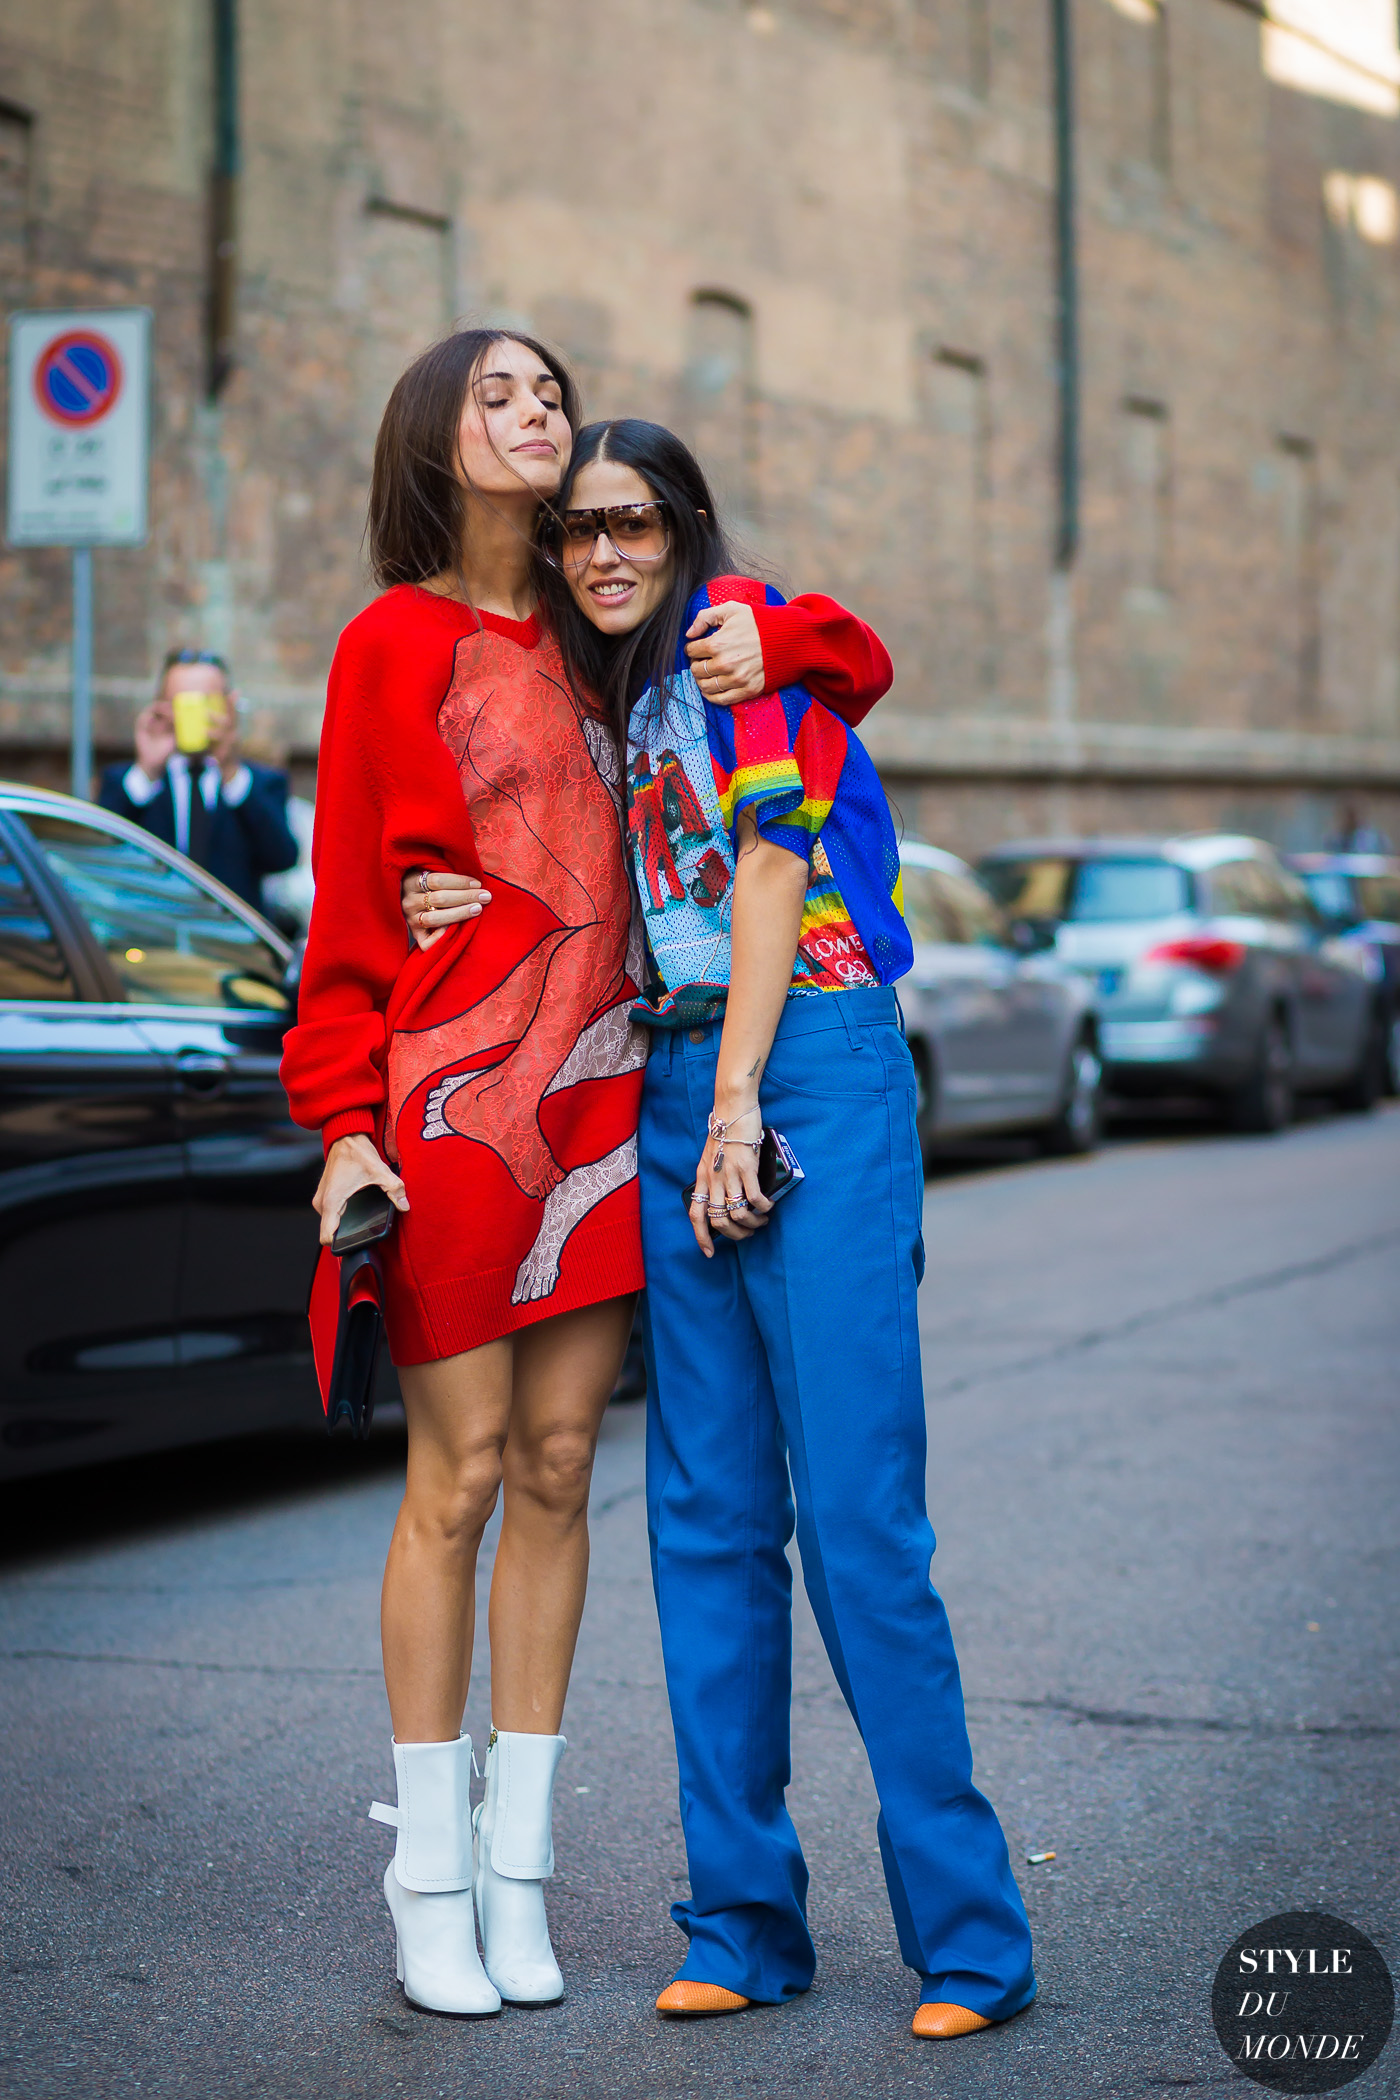 Diletta Bonaiuti and Gilda Ambrosio Street Style Street Fashion Streetsnaps by STYLEDUMONDE Street Style Fashion Photography